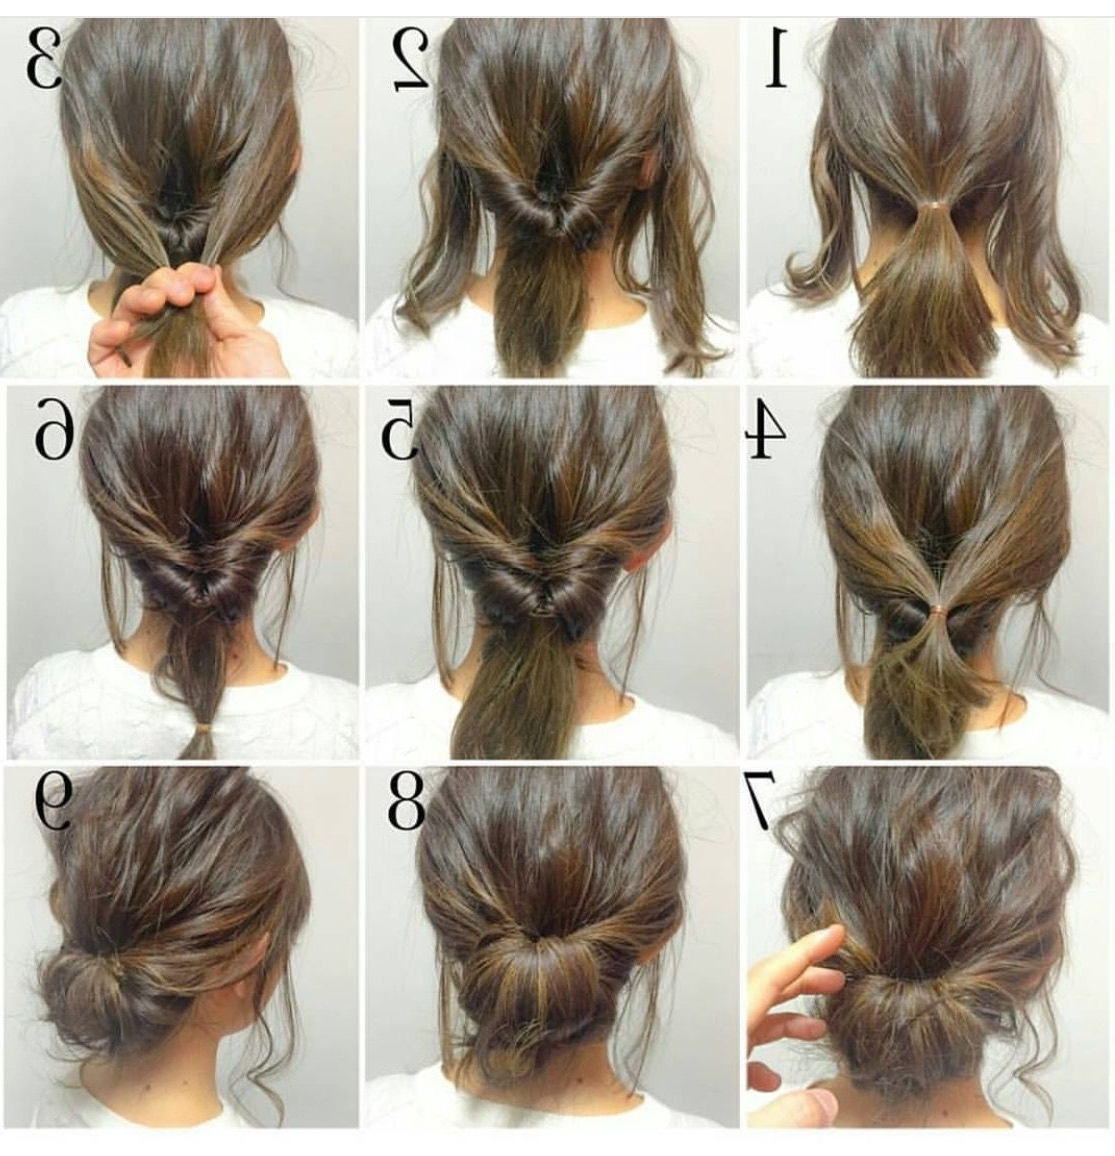 4 Messy Updos For Long Hair | Hairz | Pinterest | Updos, Hair Style Intended For Easy Updo Hairstyles (View 3 of 15)